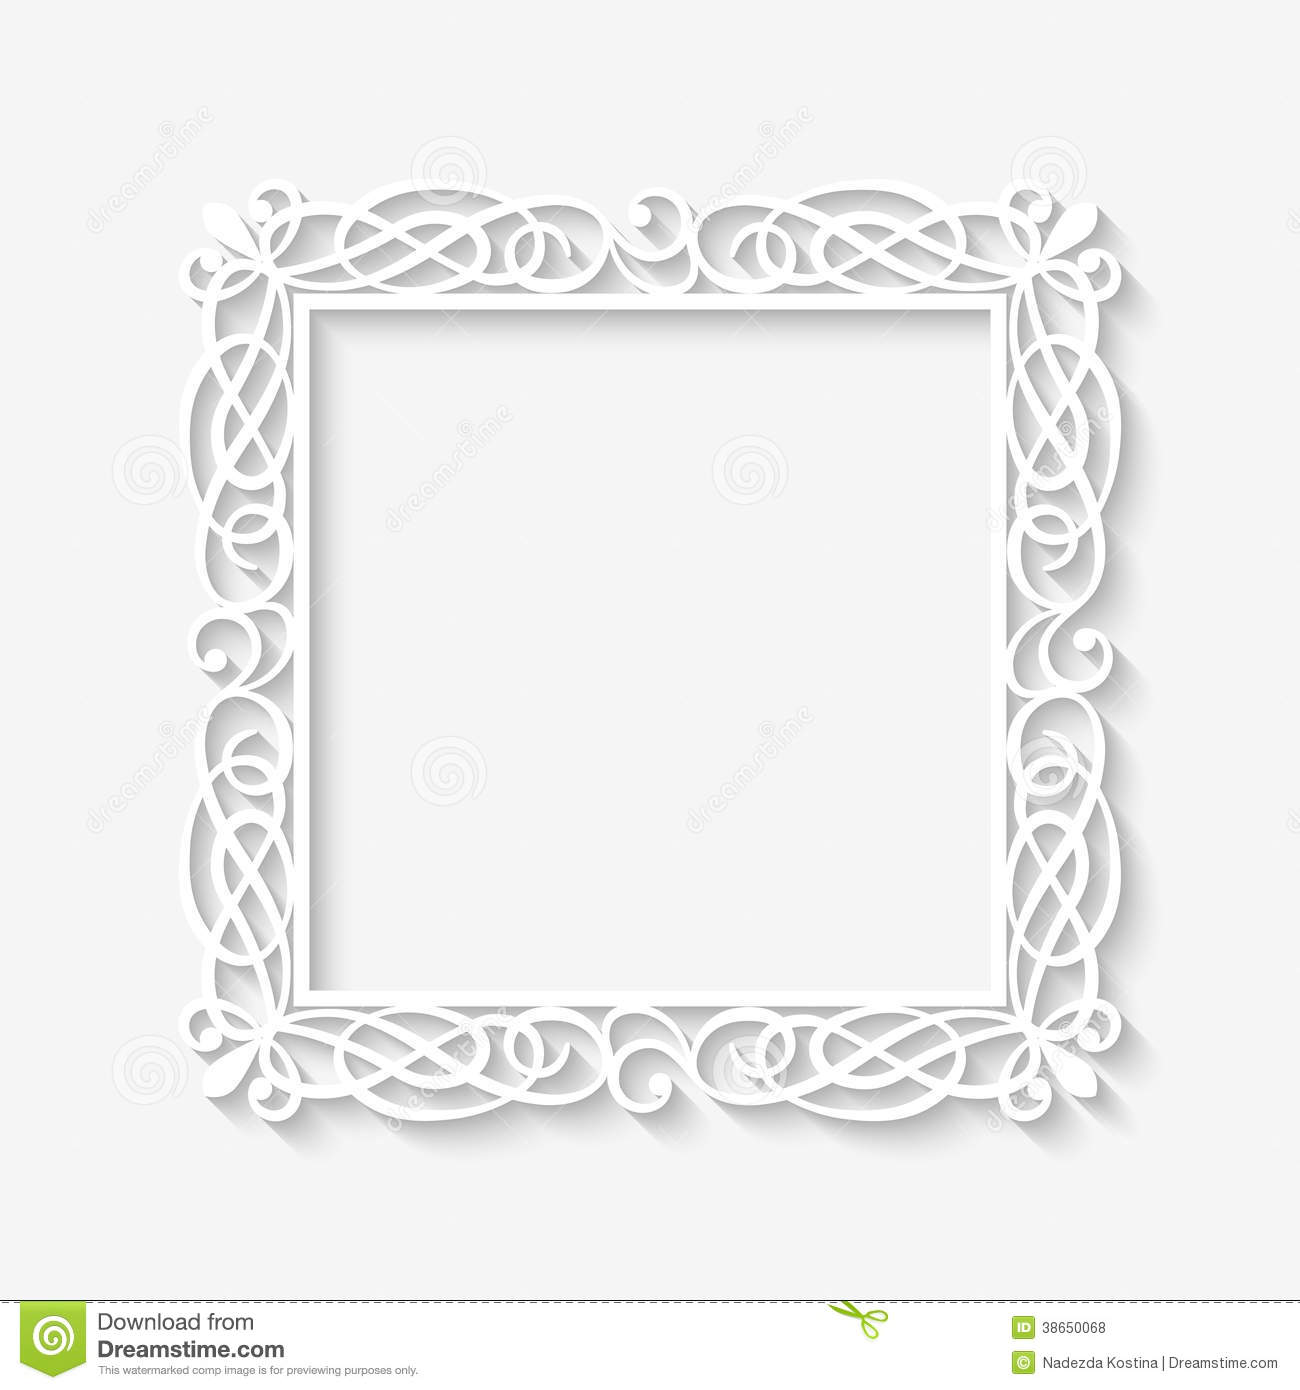 vector vintage white frame background - White Vintage Picture Frames